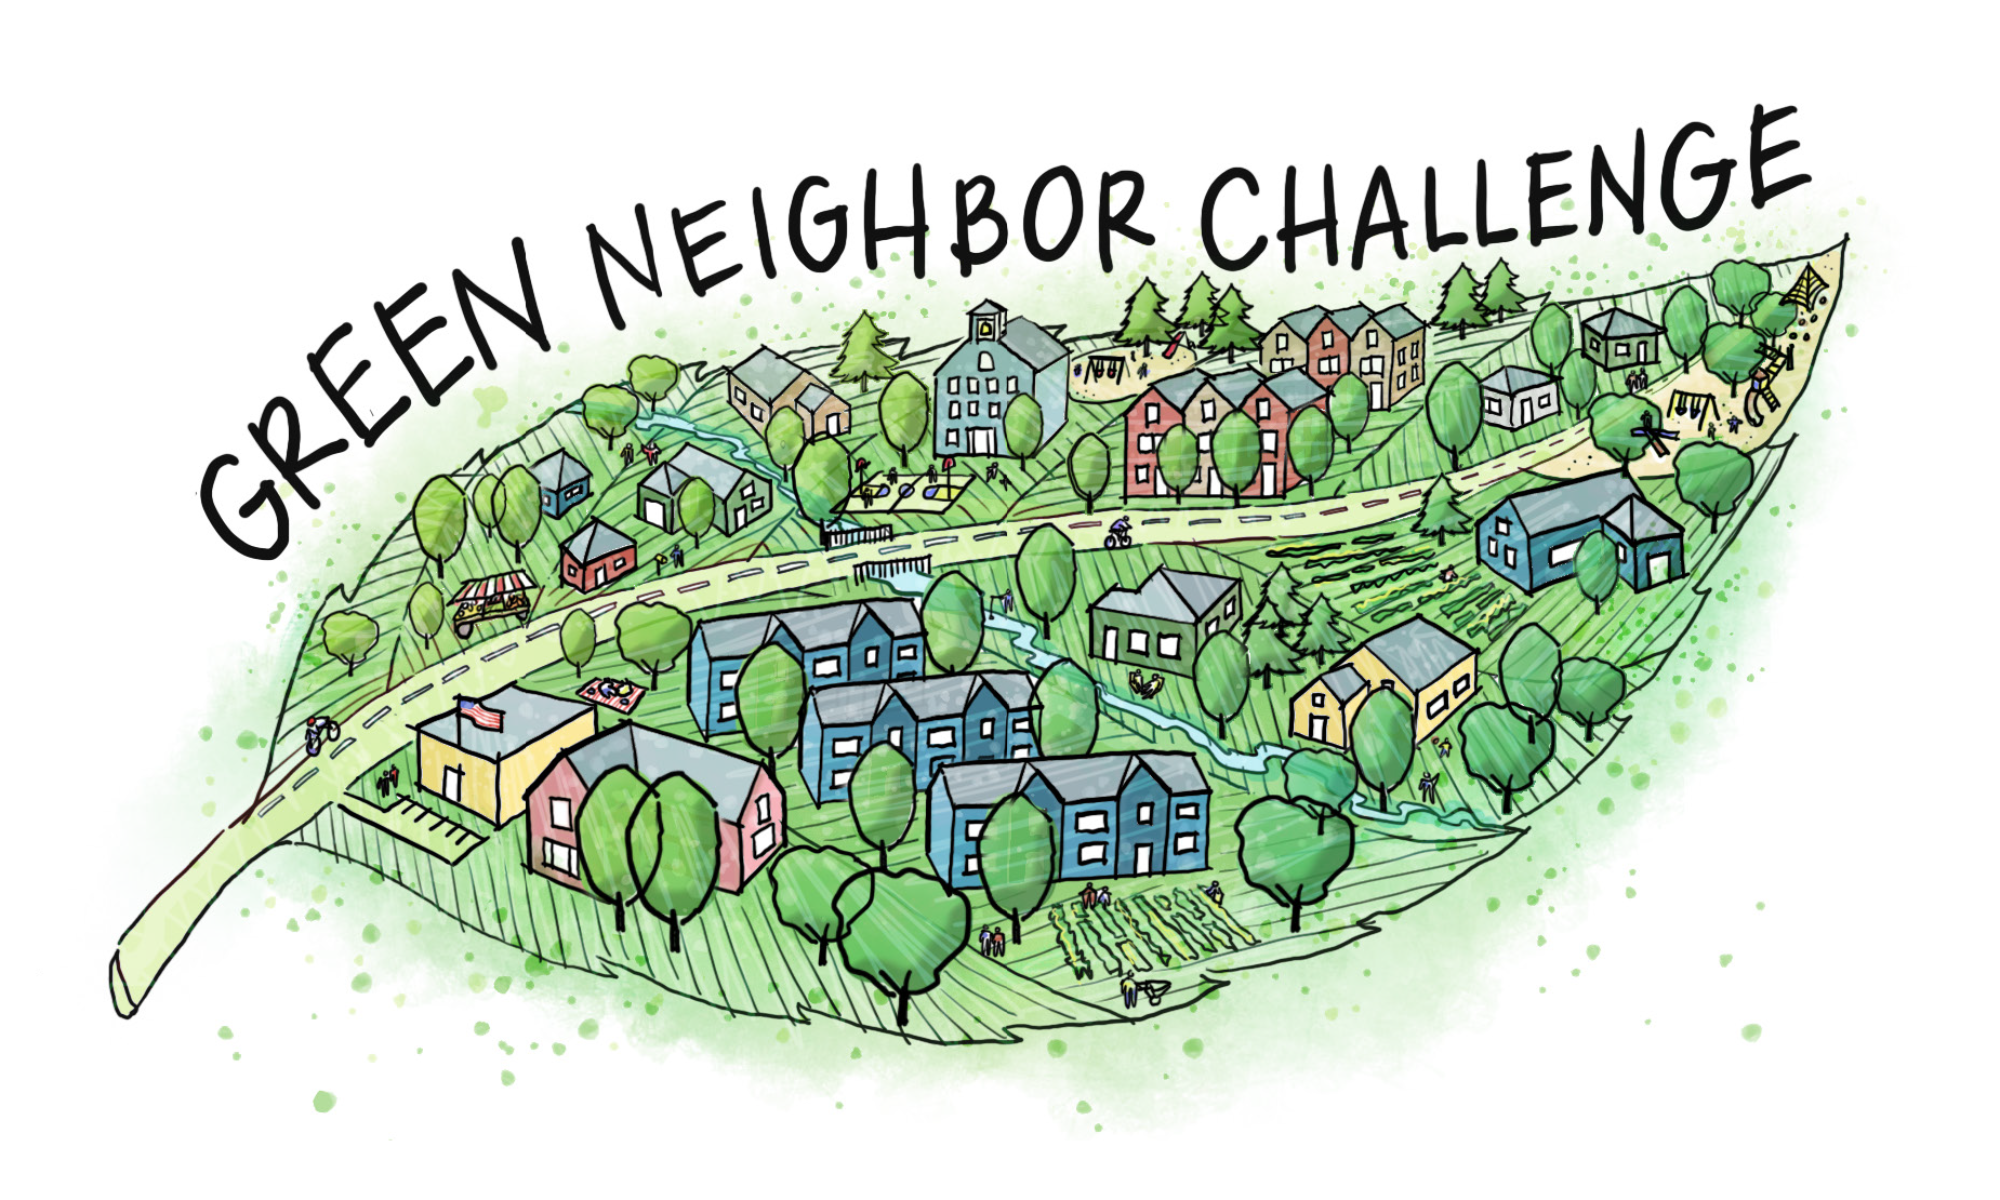 The Green Neighbor Challenge